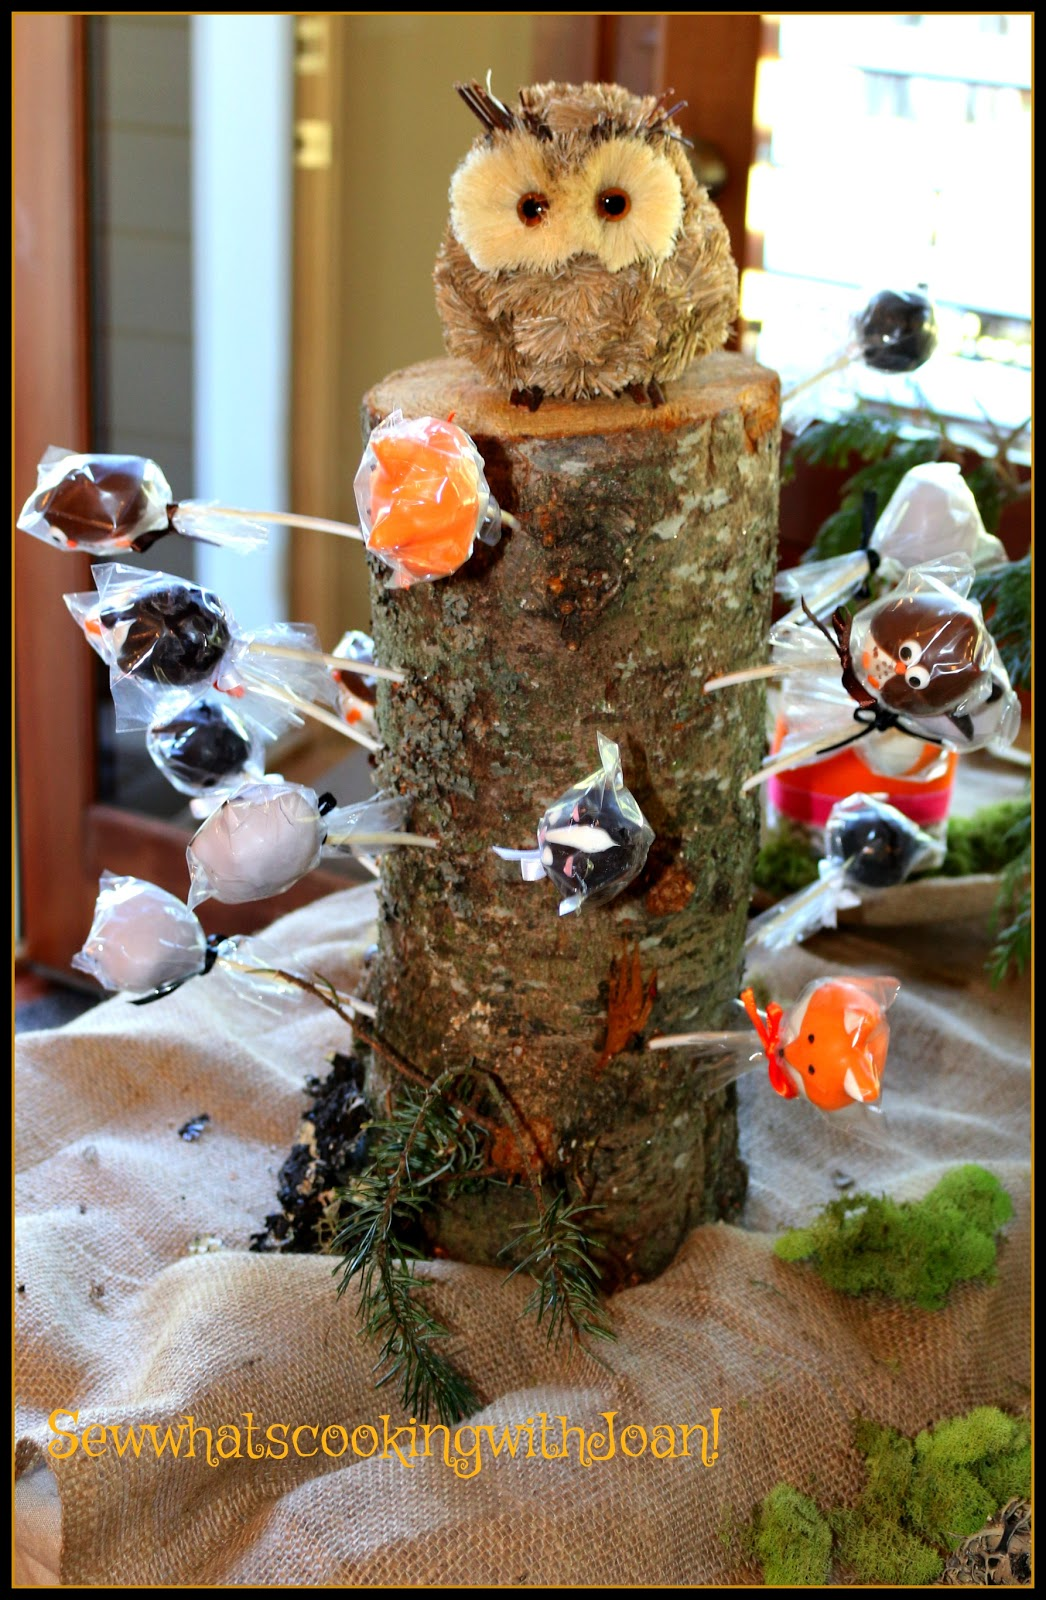 Bottle brush woodland animals - Woodland Animal Cake Pops Made By A Baker On Etsy She Is No Longer Baking I Found This Stump On My Walk And Decided It Would Be A Perfect Cake Pop Stand